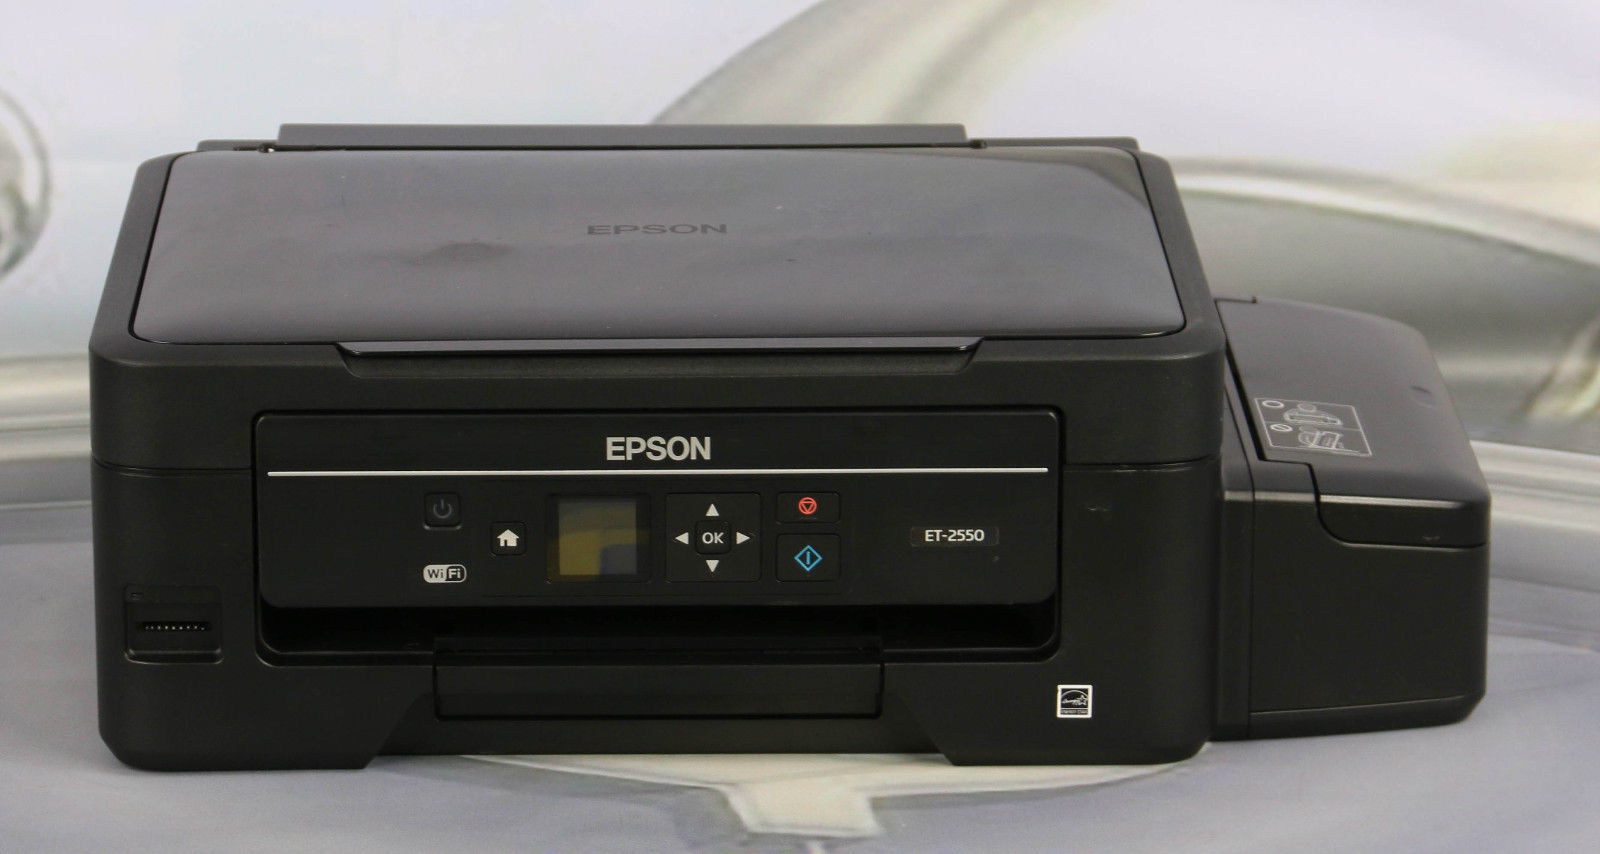 epson expression et 2550 ecotank all in one printer copier scanner one d6075 office. Black Bedroom Furniture Sets. Home Design Ideas